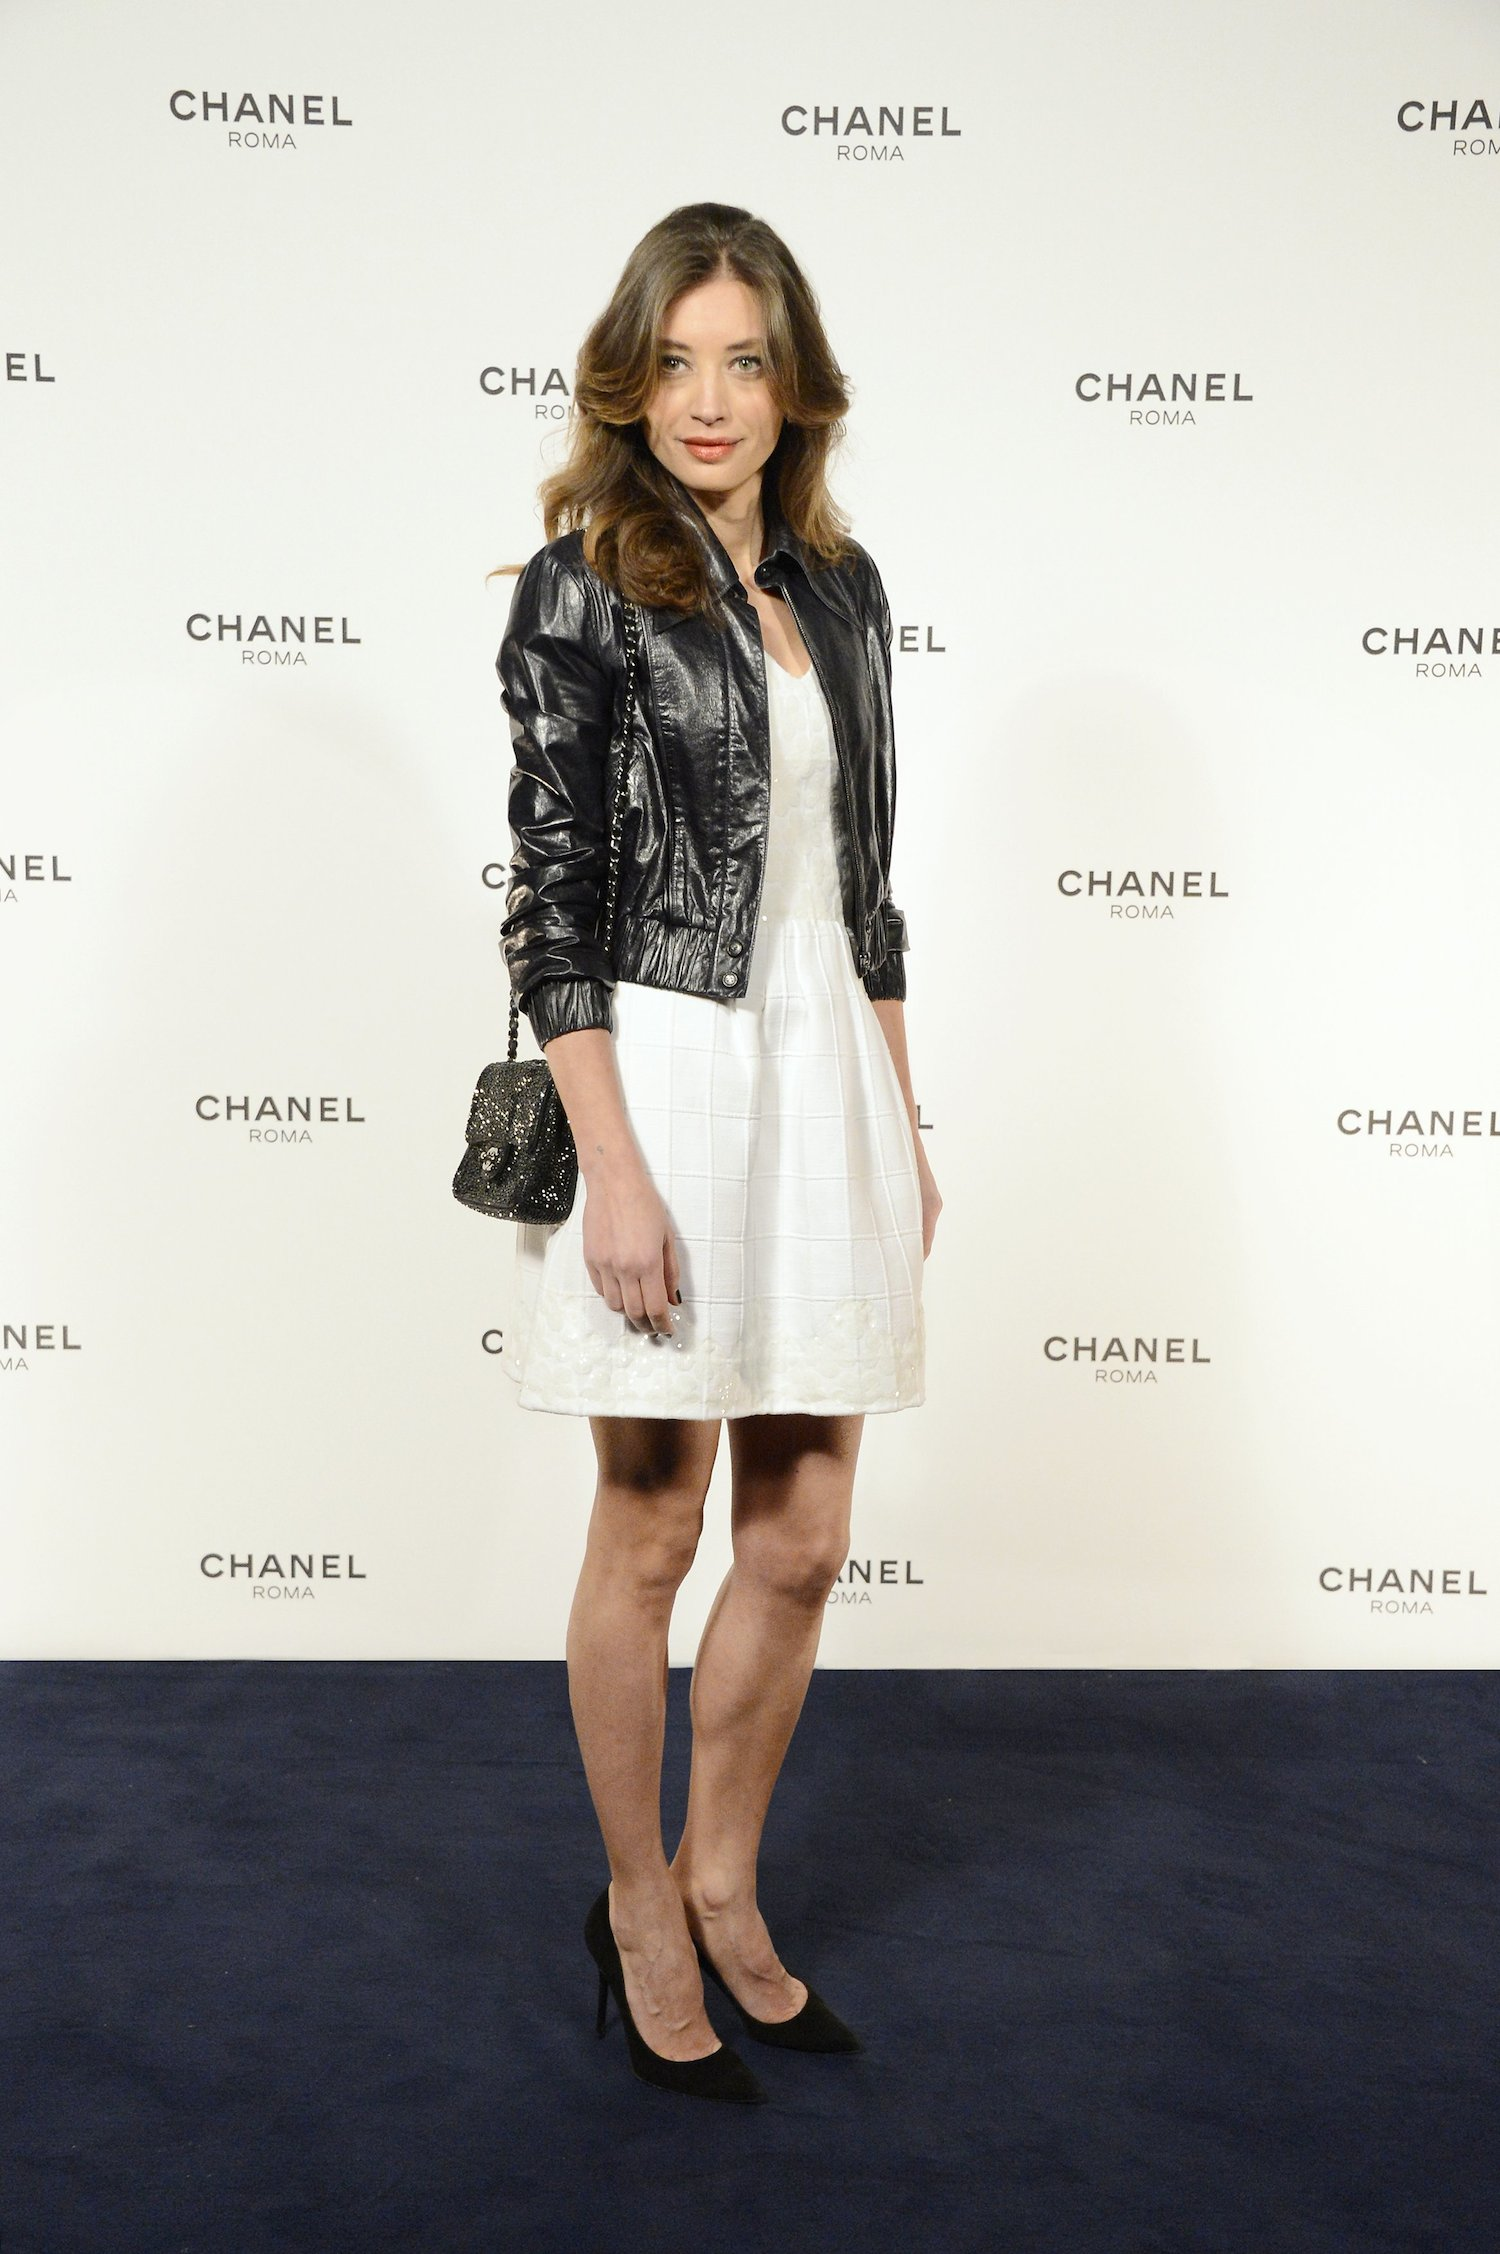 Chanel Rome Party Opening - Margareth Made